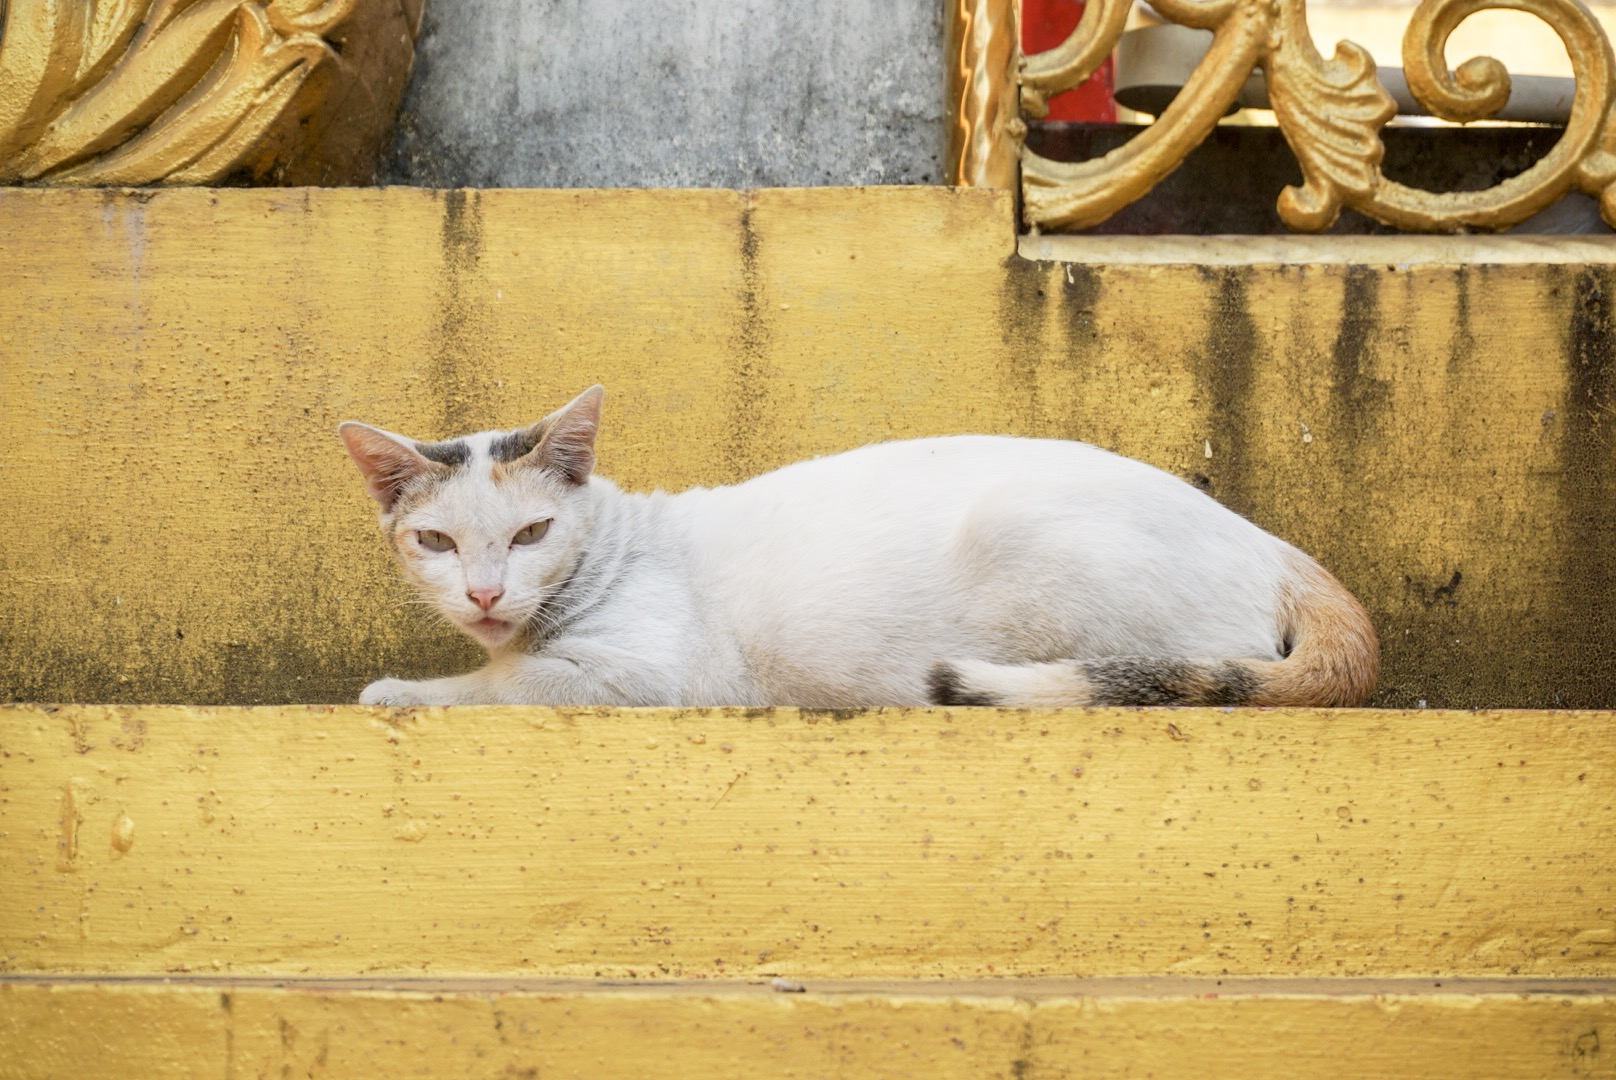 There're lots of cats walking around the pagoda